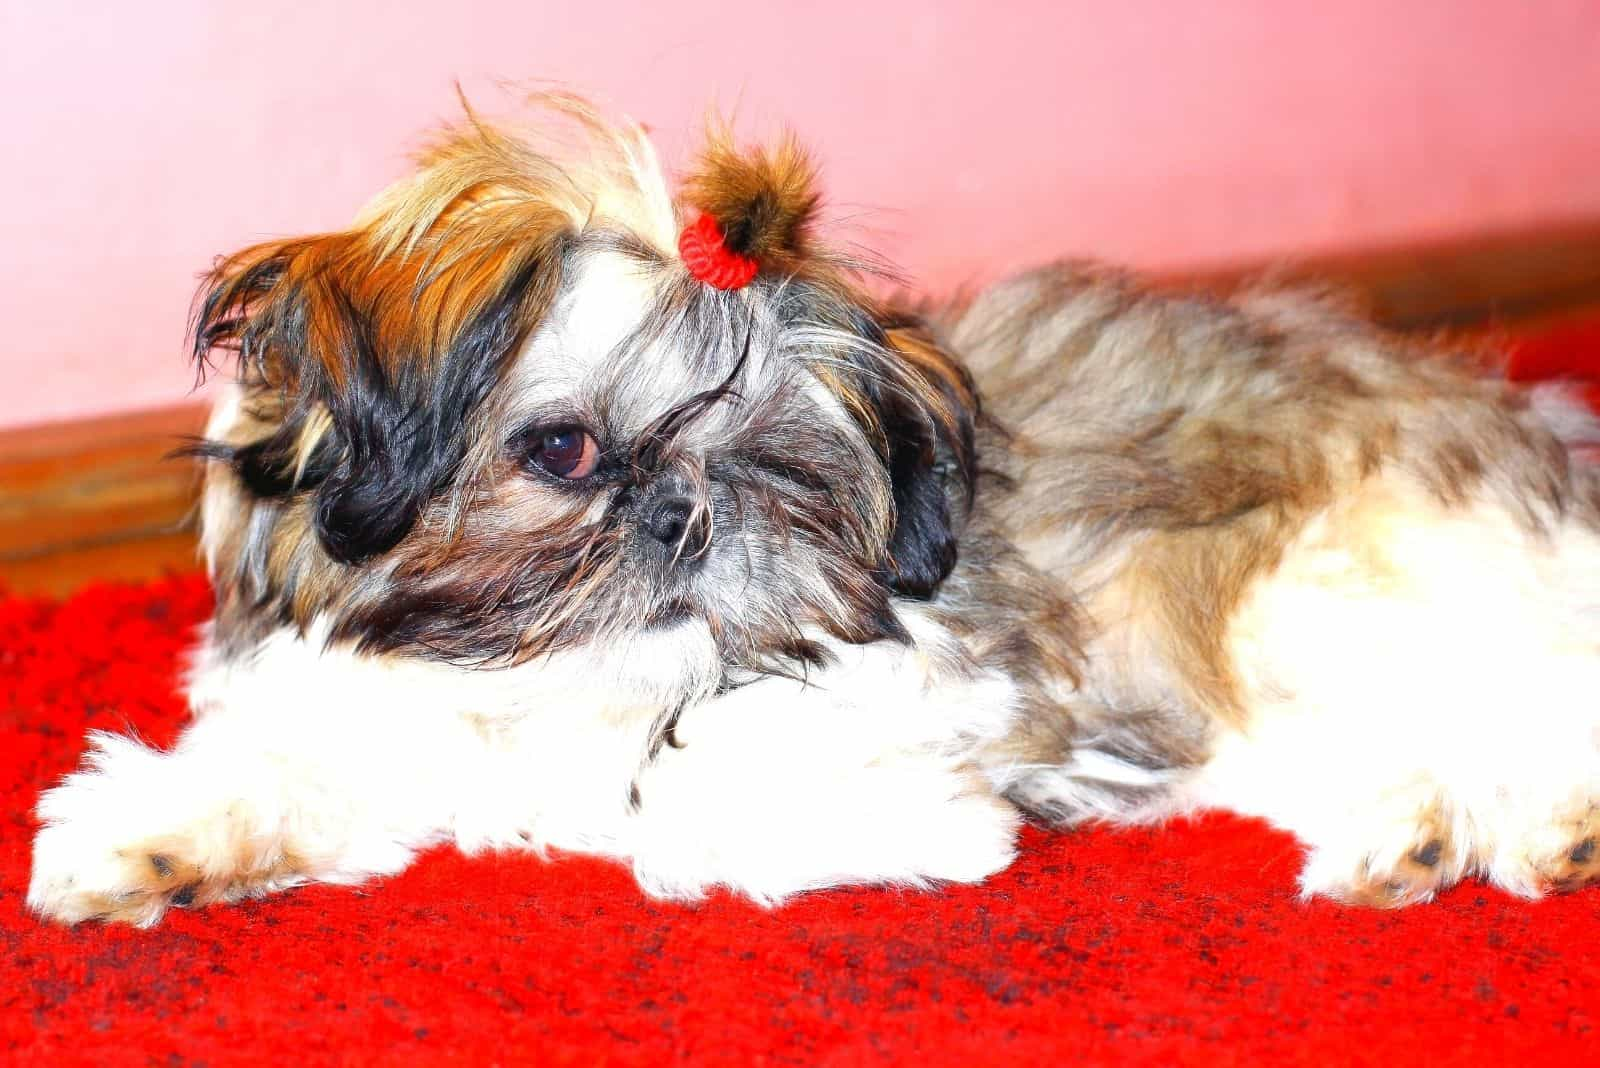 gold shih tzu puppy with black tips lying down on red carpet